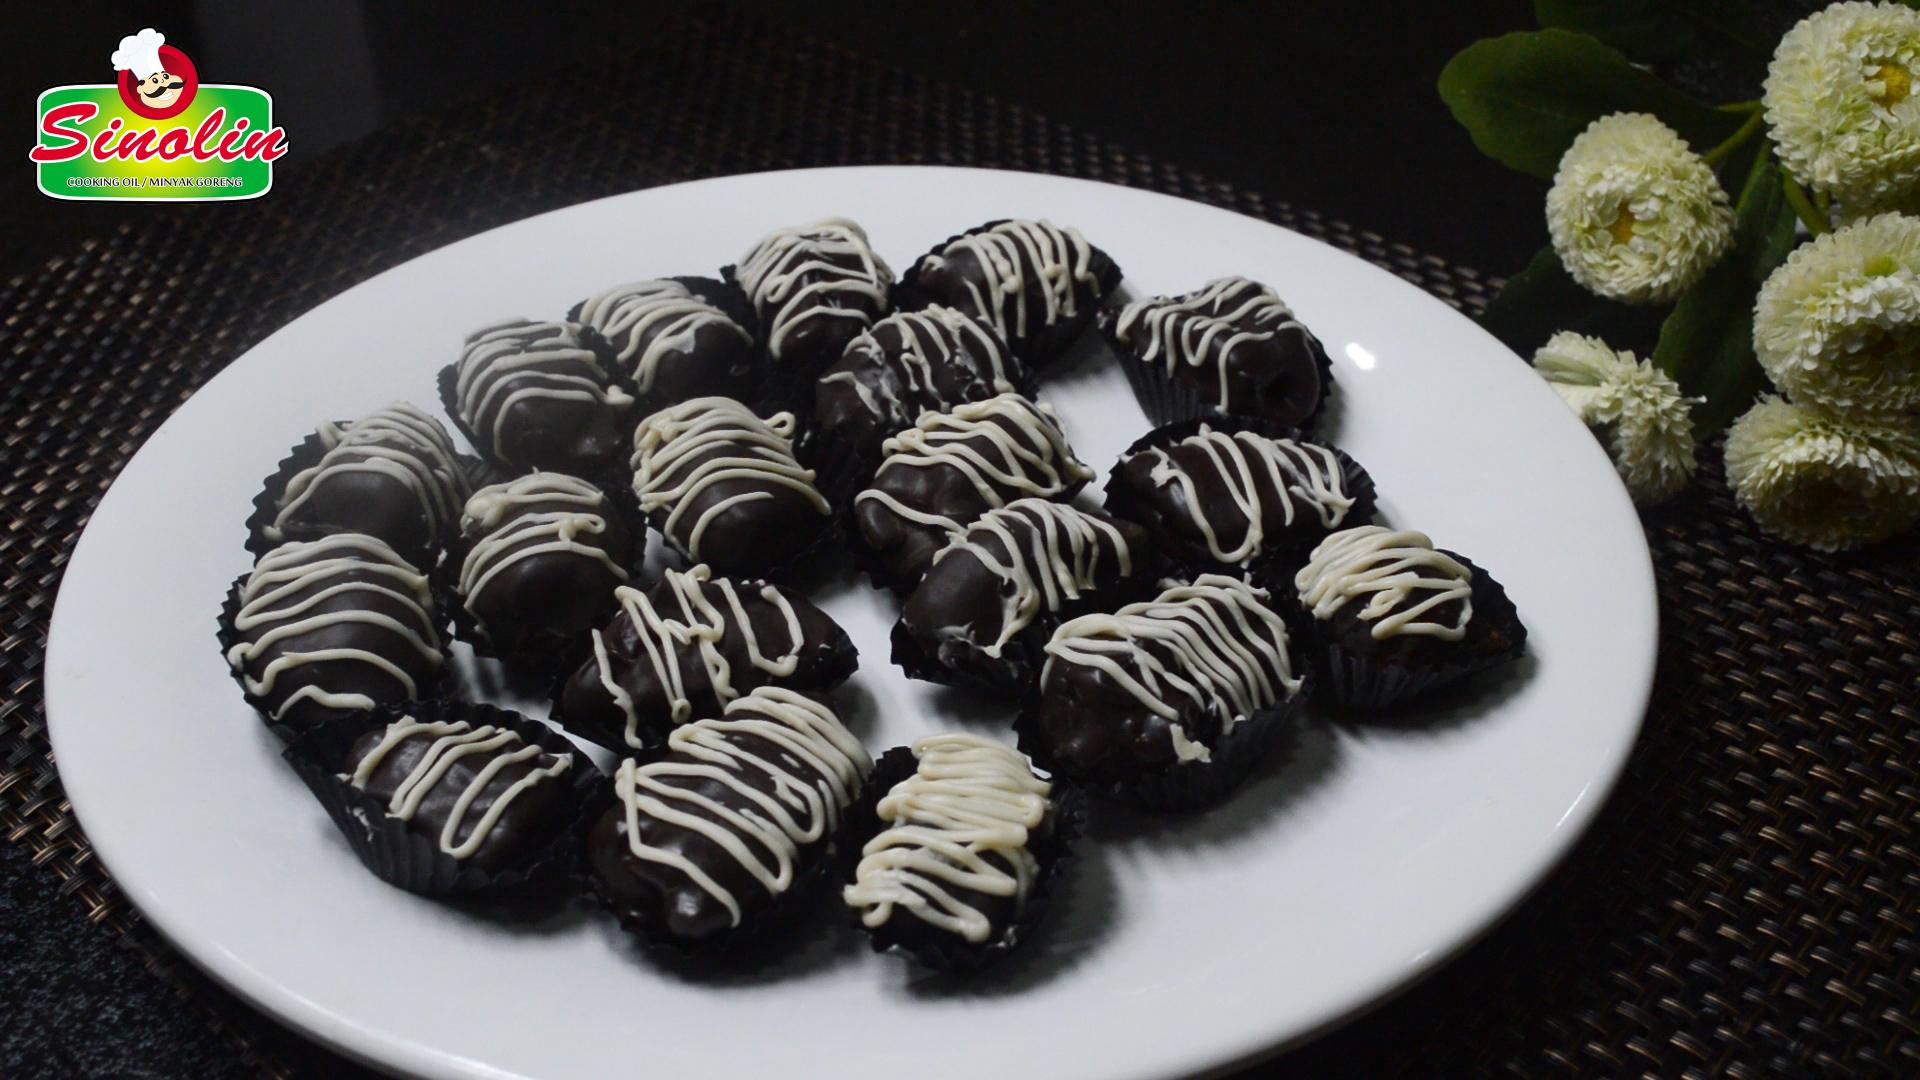 Chocolate Date Filled with Cashews By Dapur Sinolin